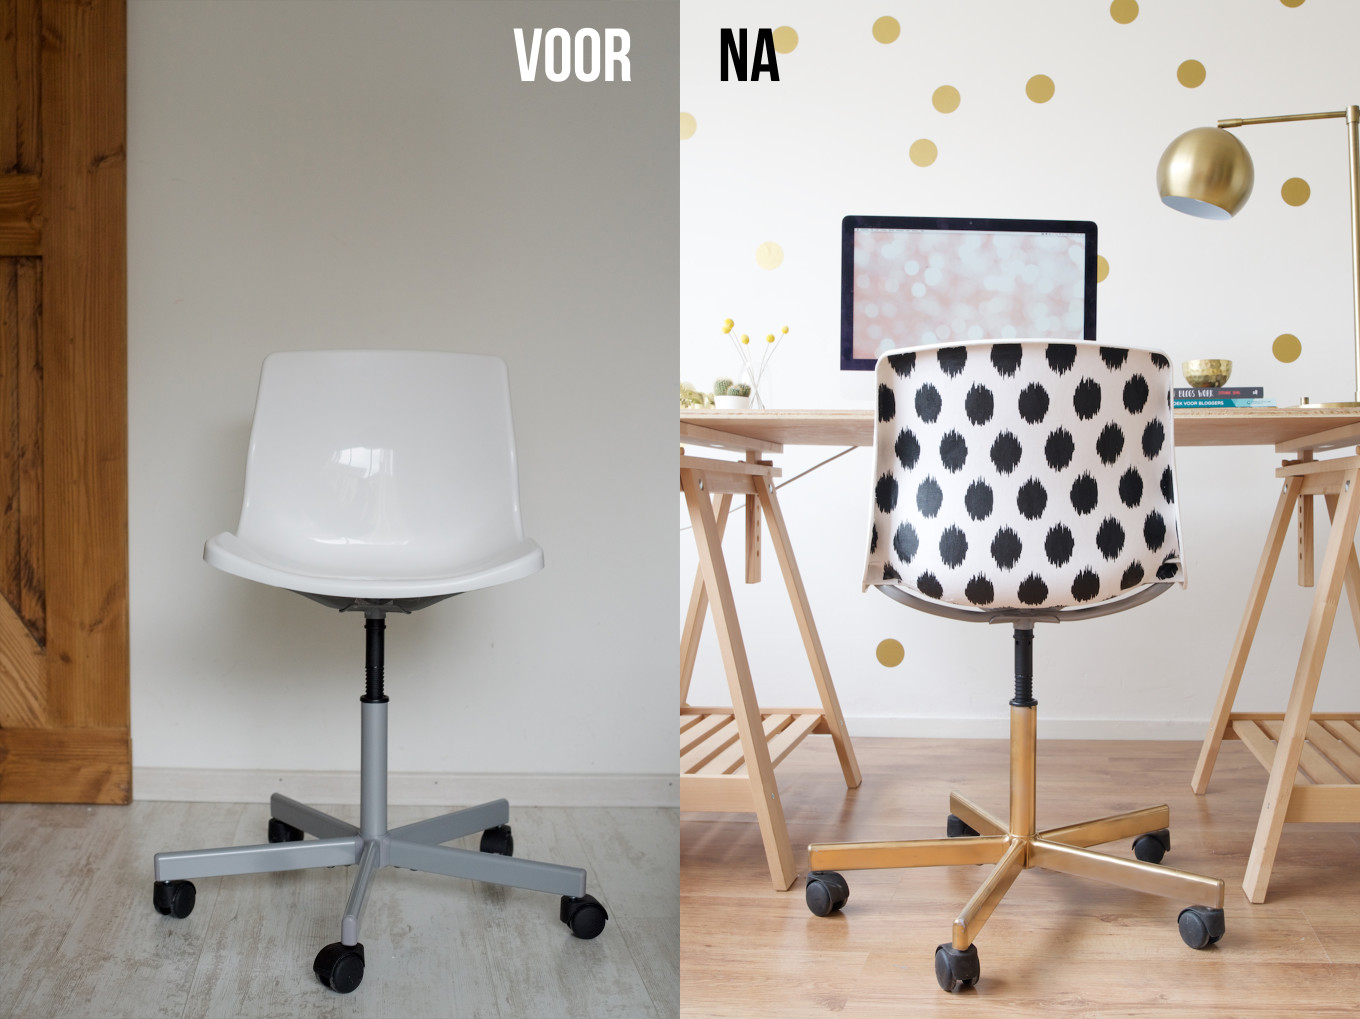 Zelf Bureaustoel Stofferen.Try This At Home Bureaustoel Bekleden Met Modpodge A Cup Of Life